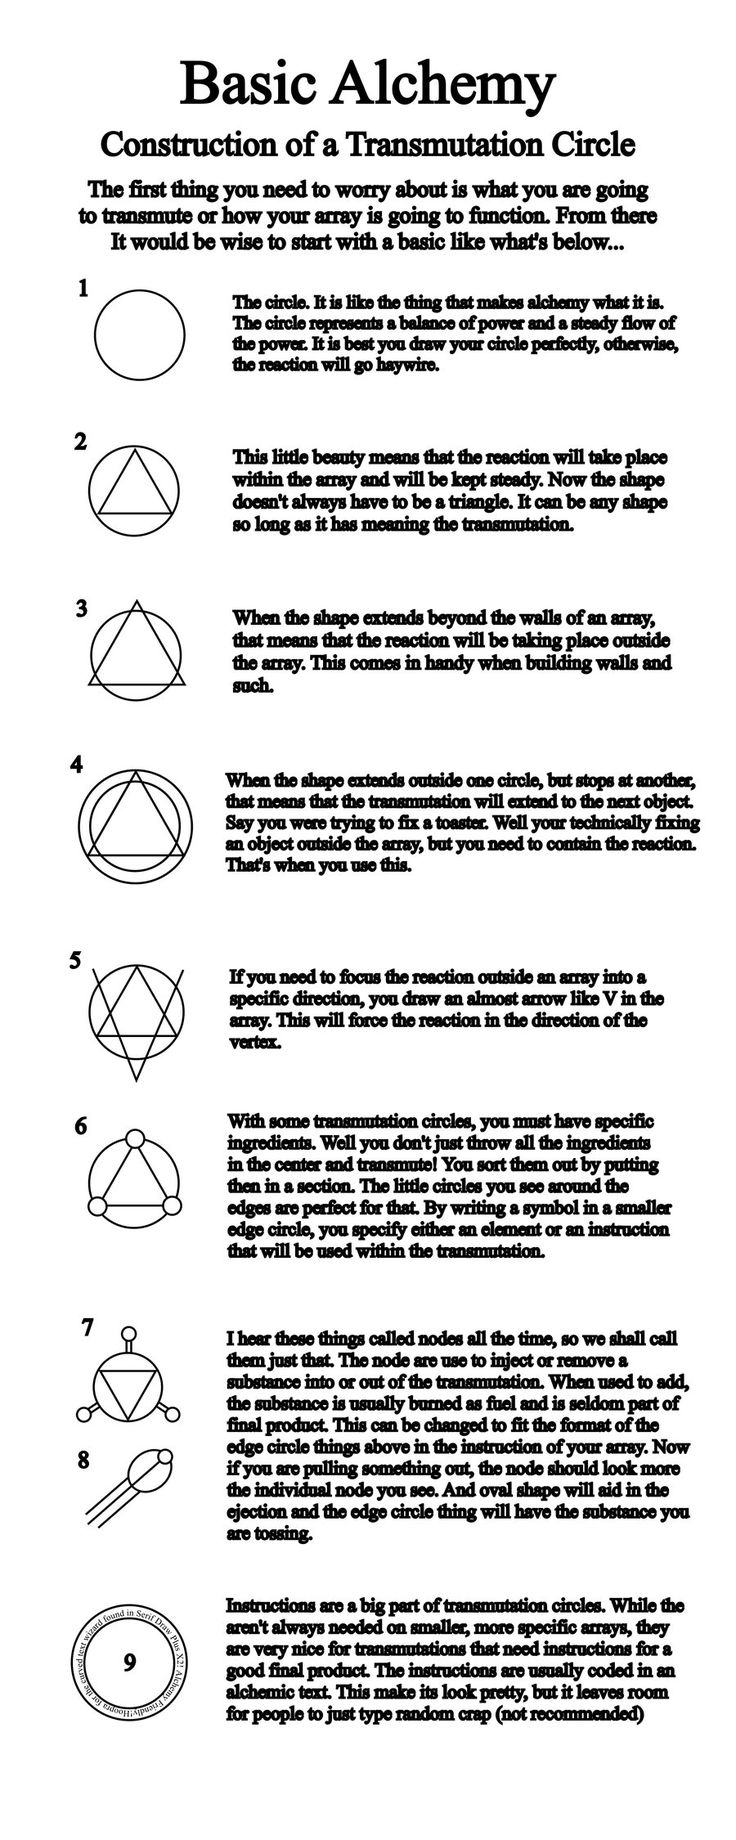 18 best transmutation circles images on pinterest alchemy transmutation circle tutorial by notshurlyiantart biocorpaavc